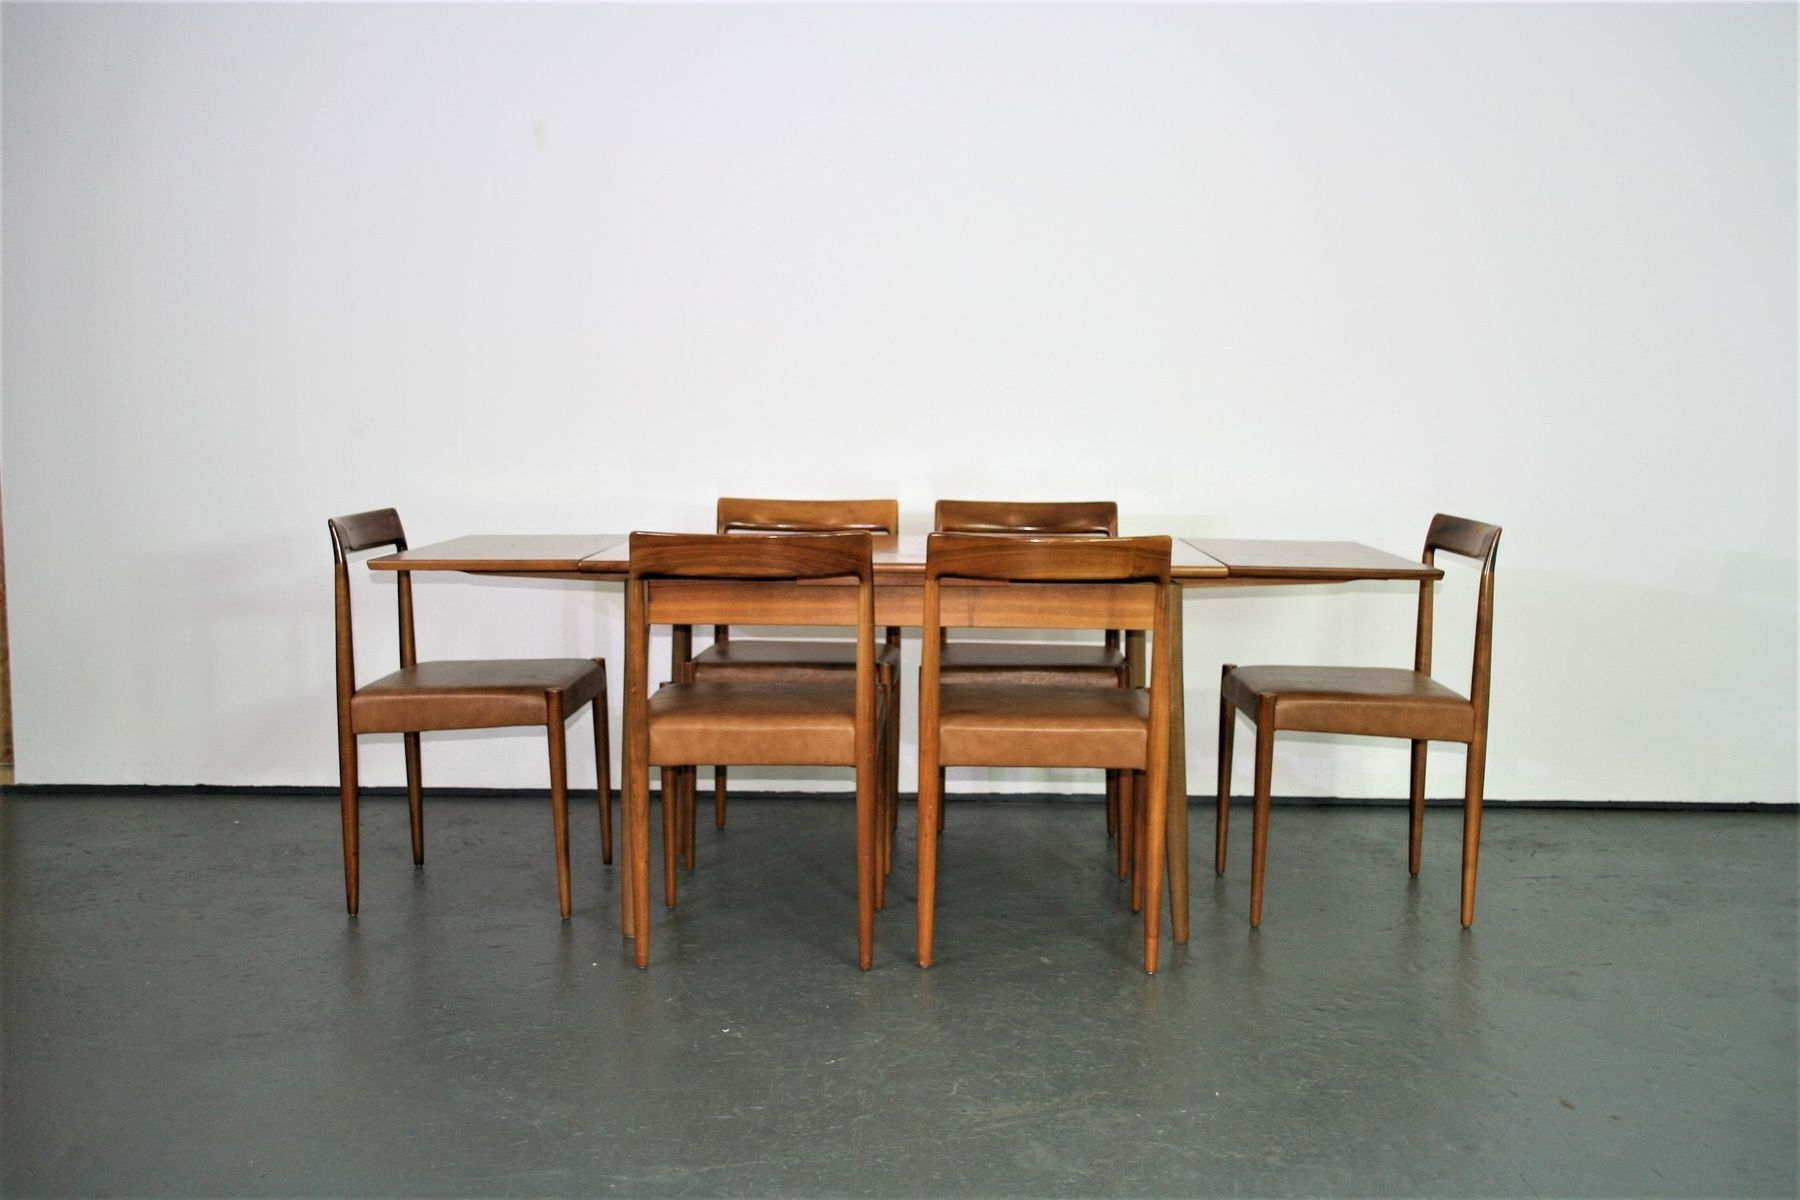 Dining Chairs And Extendable Dining Table From Lübke, 1960S For Sale With Popular Extendable Dining Tables With 6 Chairs (View 18 of 25)